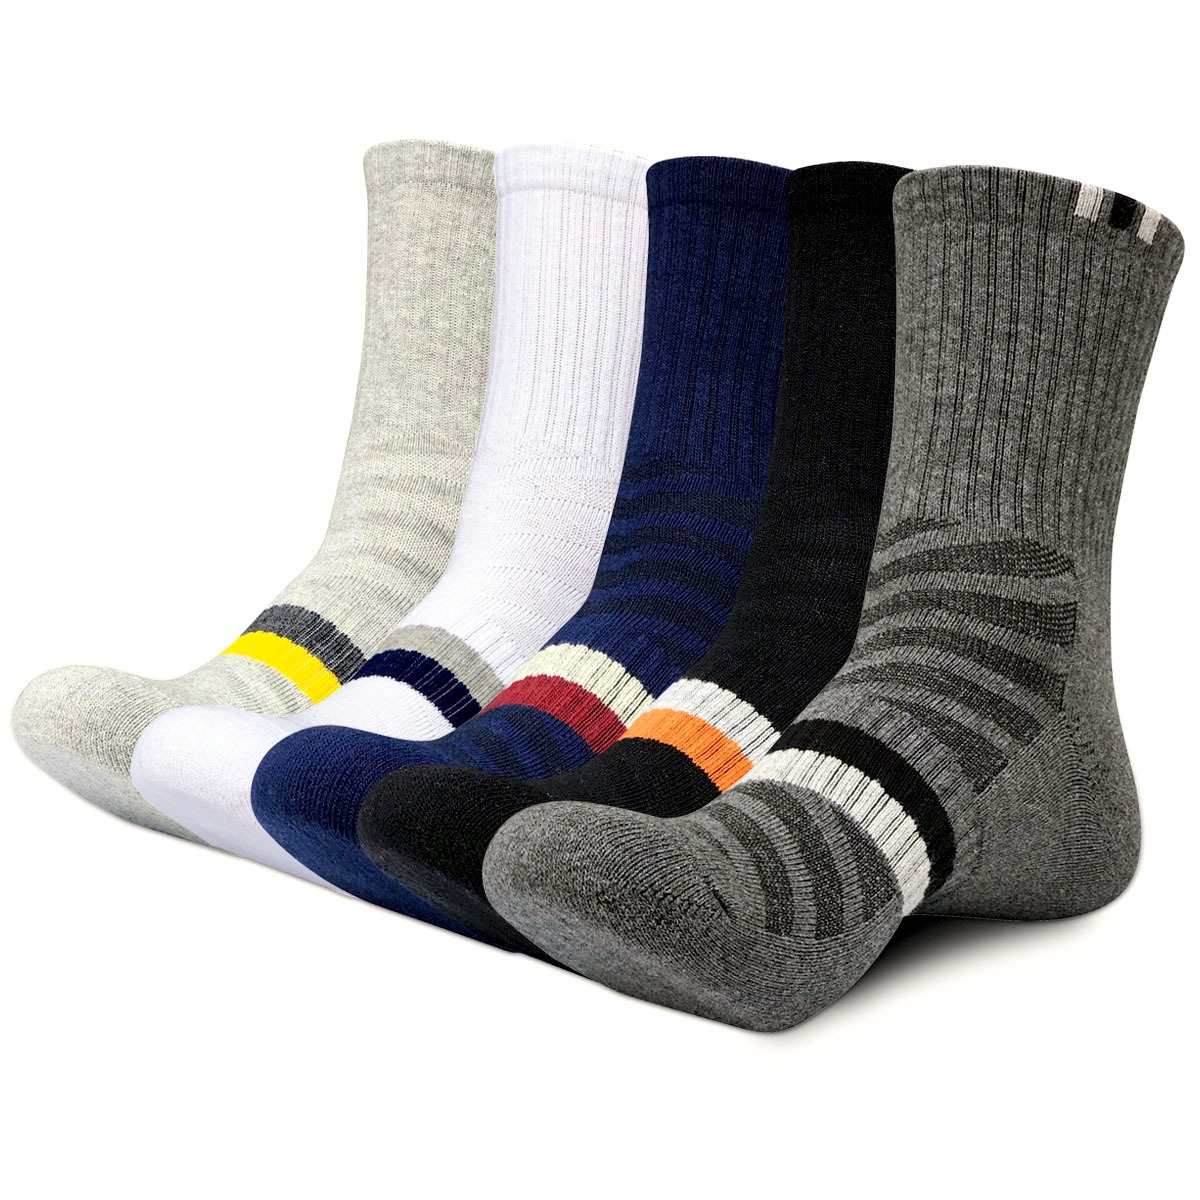 Quality Wicking Cushion Cotton Sports Socks Winter Men Socks Thicken Thermal Trekking Hiking Socks 1 Pair